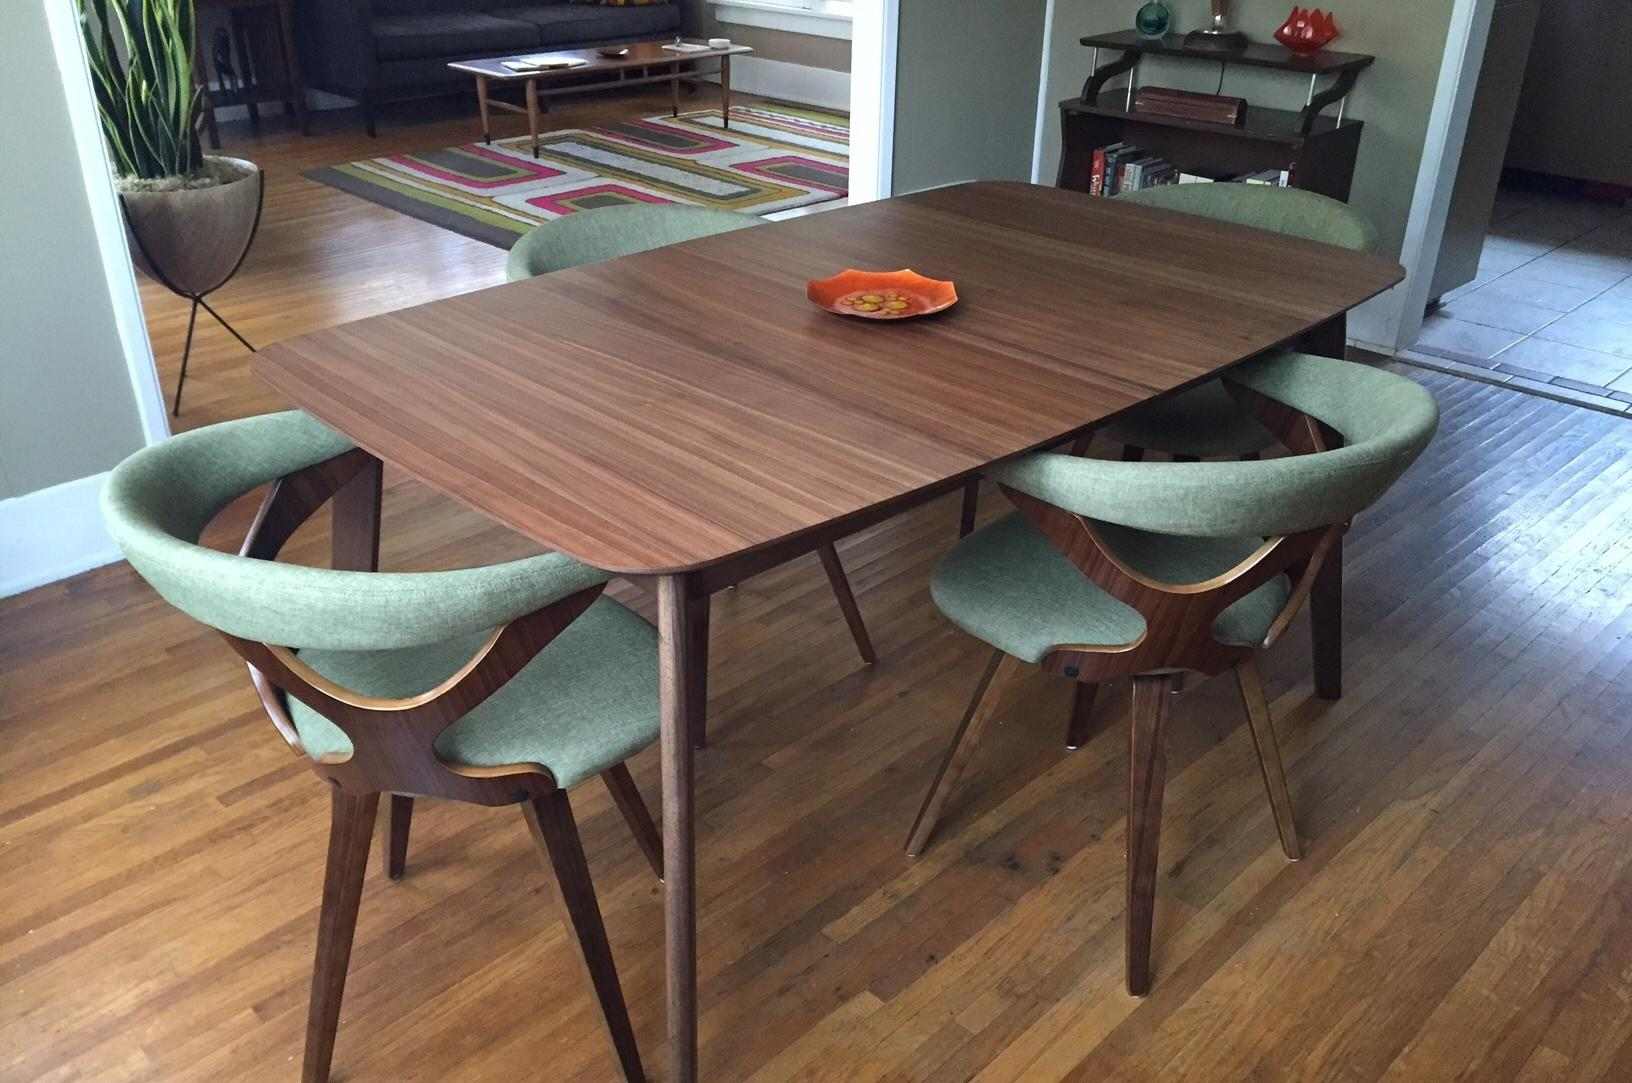 A mid century modern inspired dining room table and chairs fit the style of a